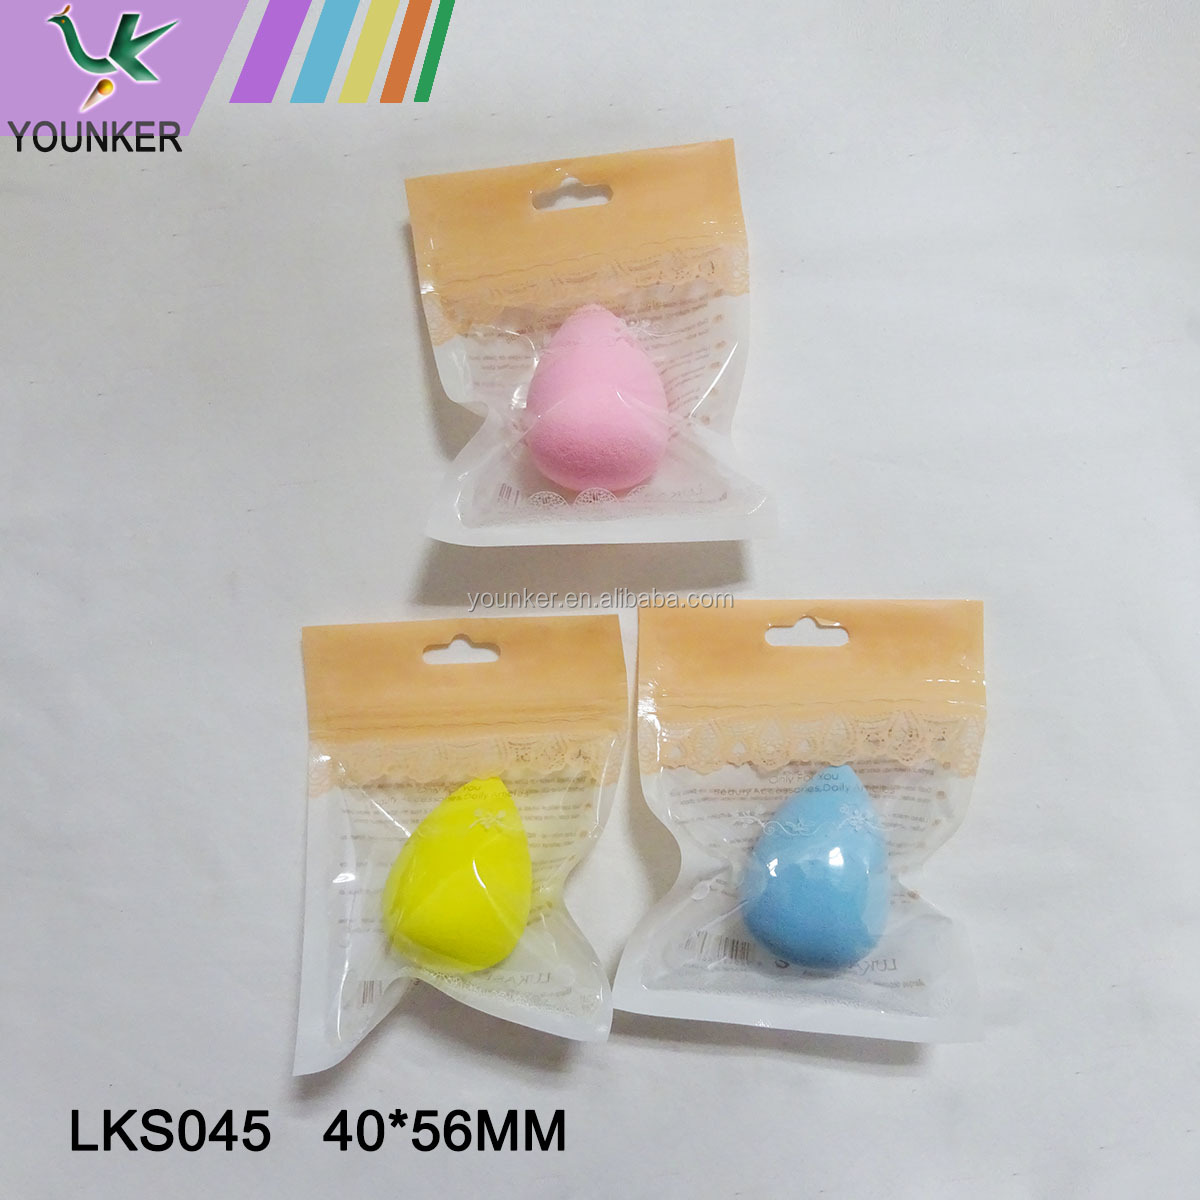 Wholesale Non-latex Makeup Sponge Puff Cosmetic Powder Puff